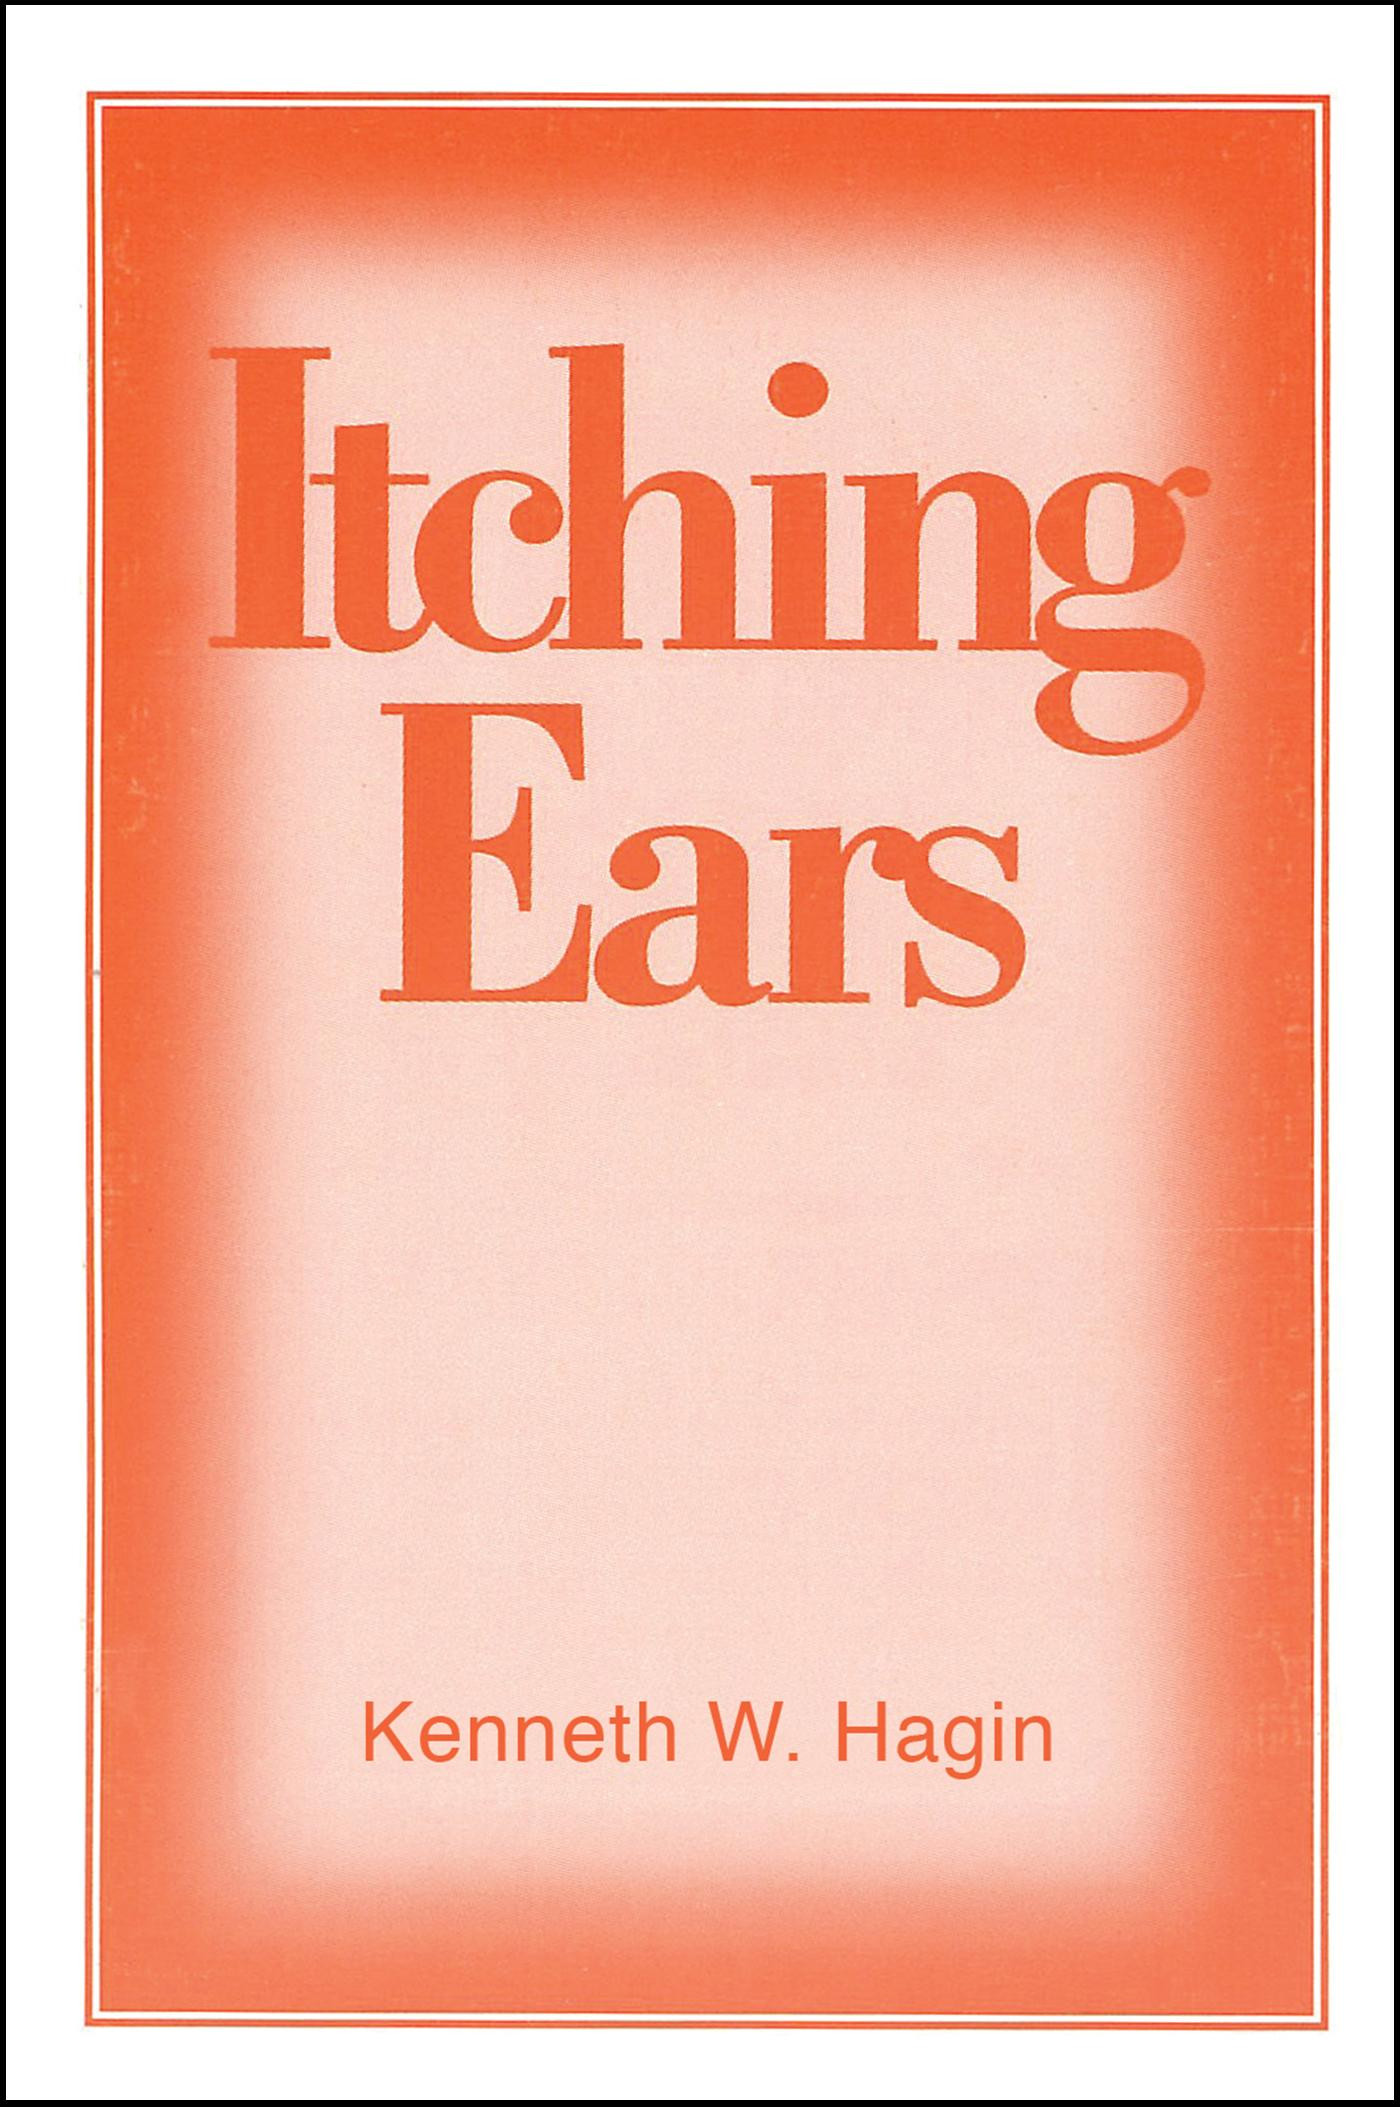 Itching Ears (Book)